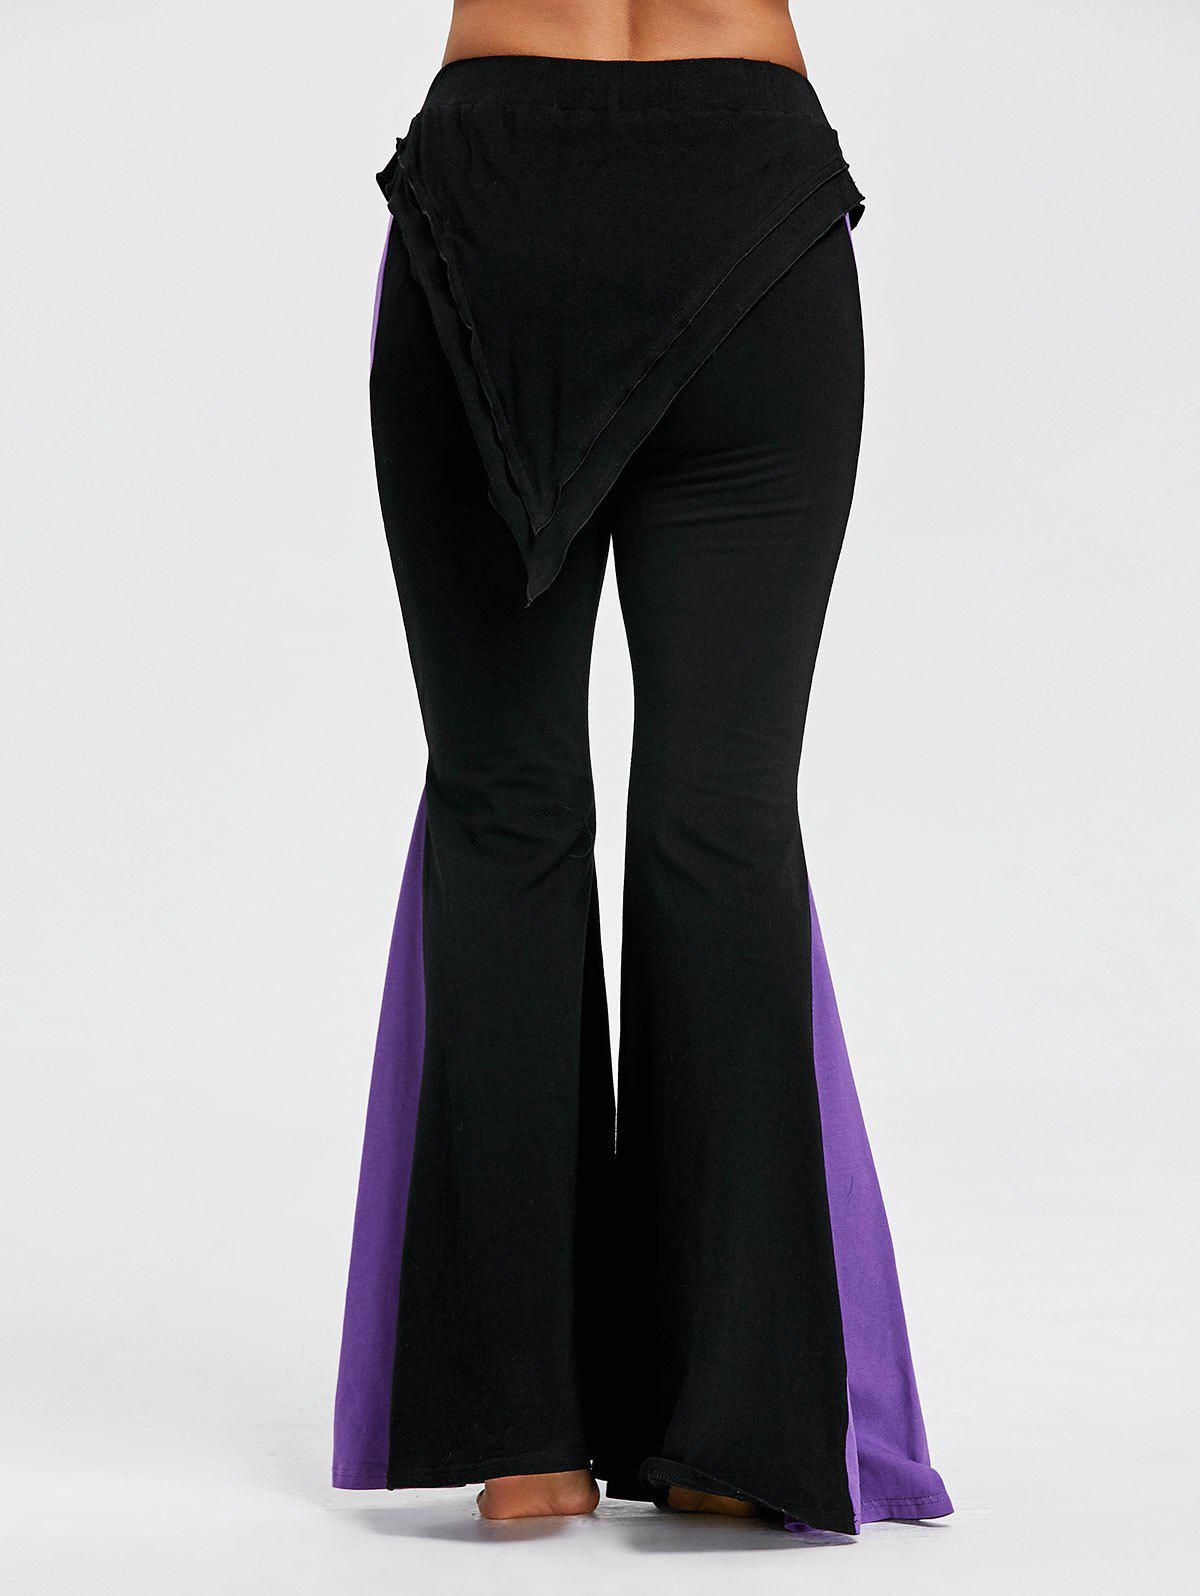 Color Block High Waisted Bell Bottom Pants - BLACK L